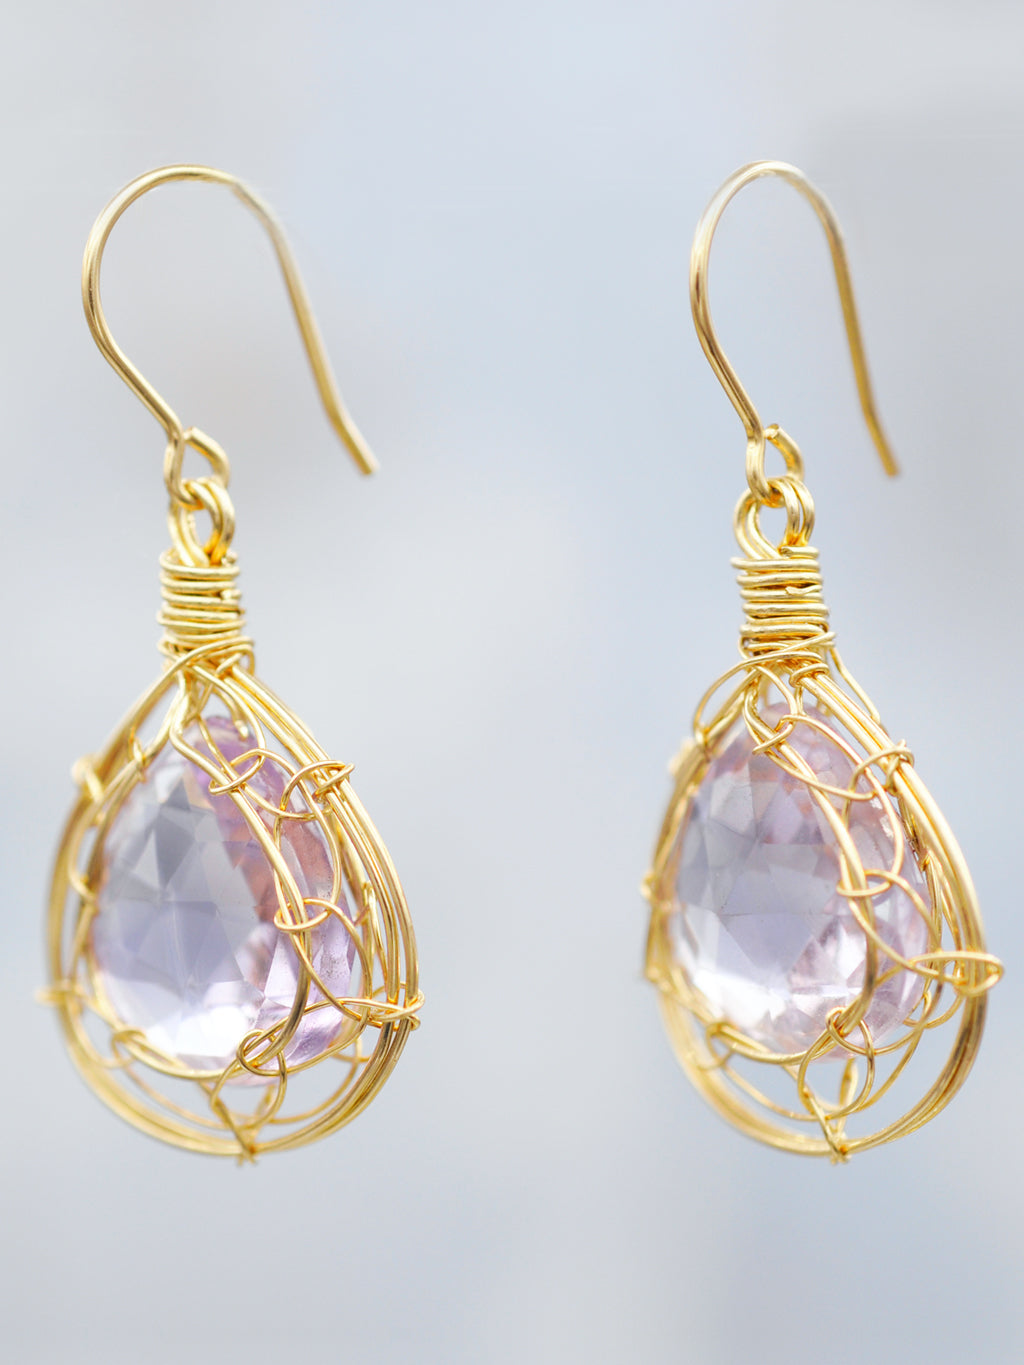 14K Goldfill Pink Amethyst Cage Frame Tear Drop Earrings